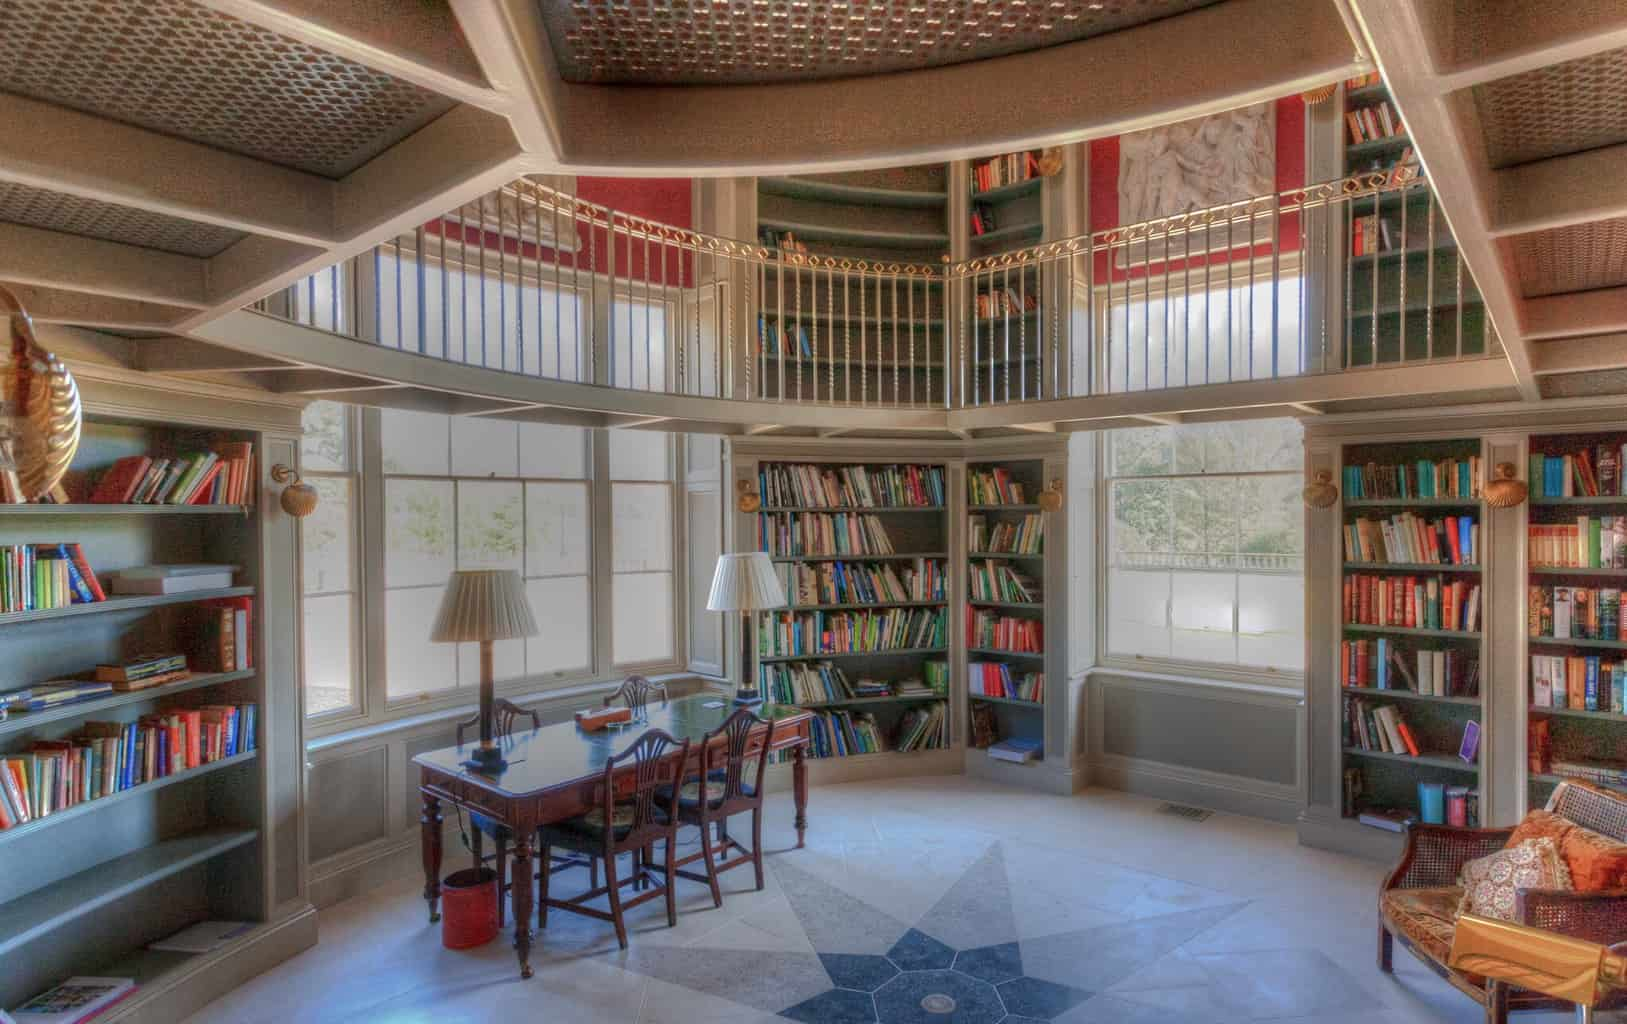 Library, Dorset, by interior photographer Rick McEvoy